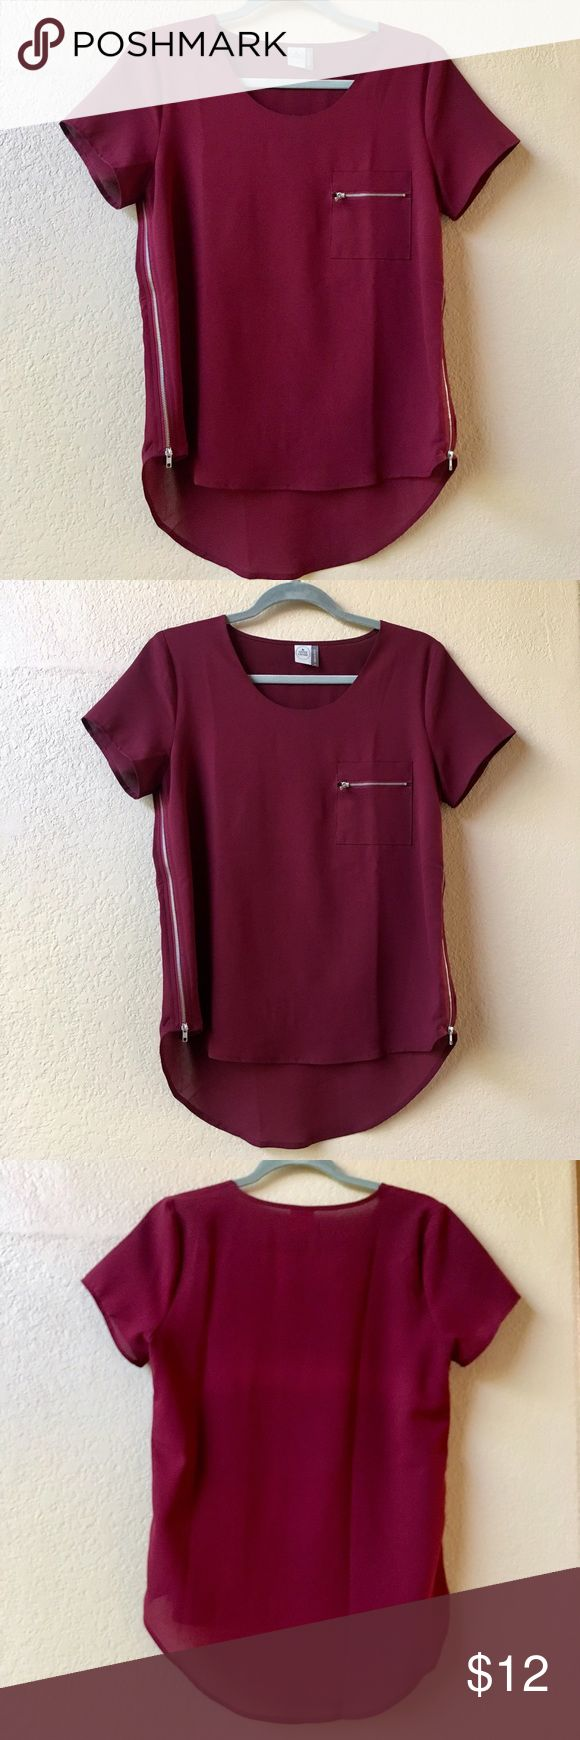 ✨ Paper Crane   Hi-Lo Burgundy Top   Size S ✨ Paper Crane   Burgundy Top w/ Zipper Detail   Size Small   High Low with Zippers on each side & one at front pocket Paper Crane Tops Blouses